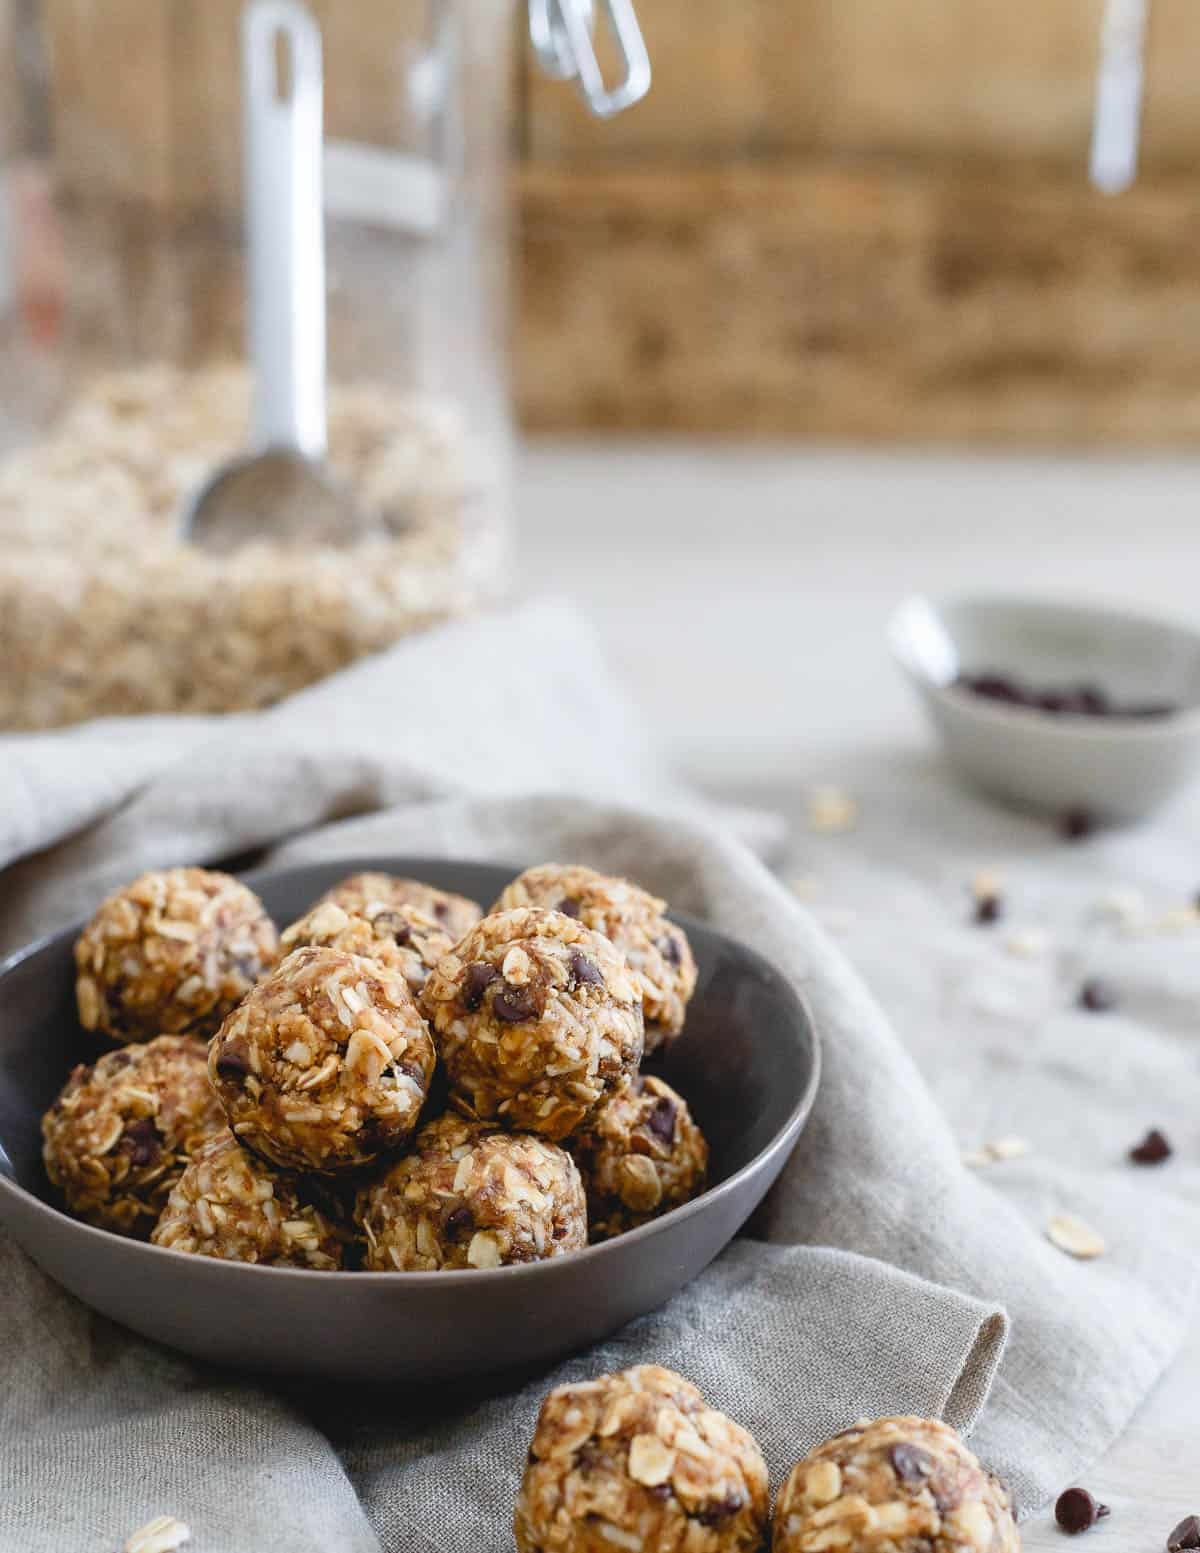 Wholesome, real food ingredients are the secret behind these tasty no bake peanut butter chocolate chip balls. Perfect for snacking or satisfying that sweet tooth!